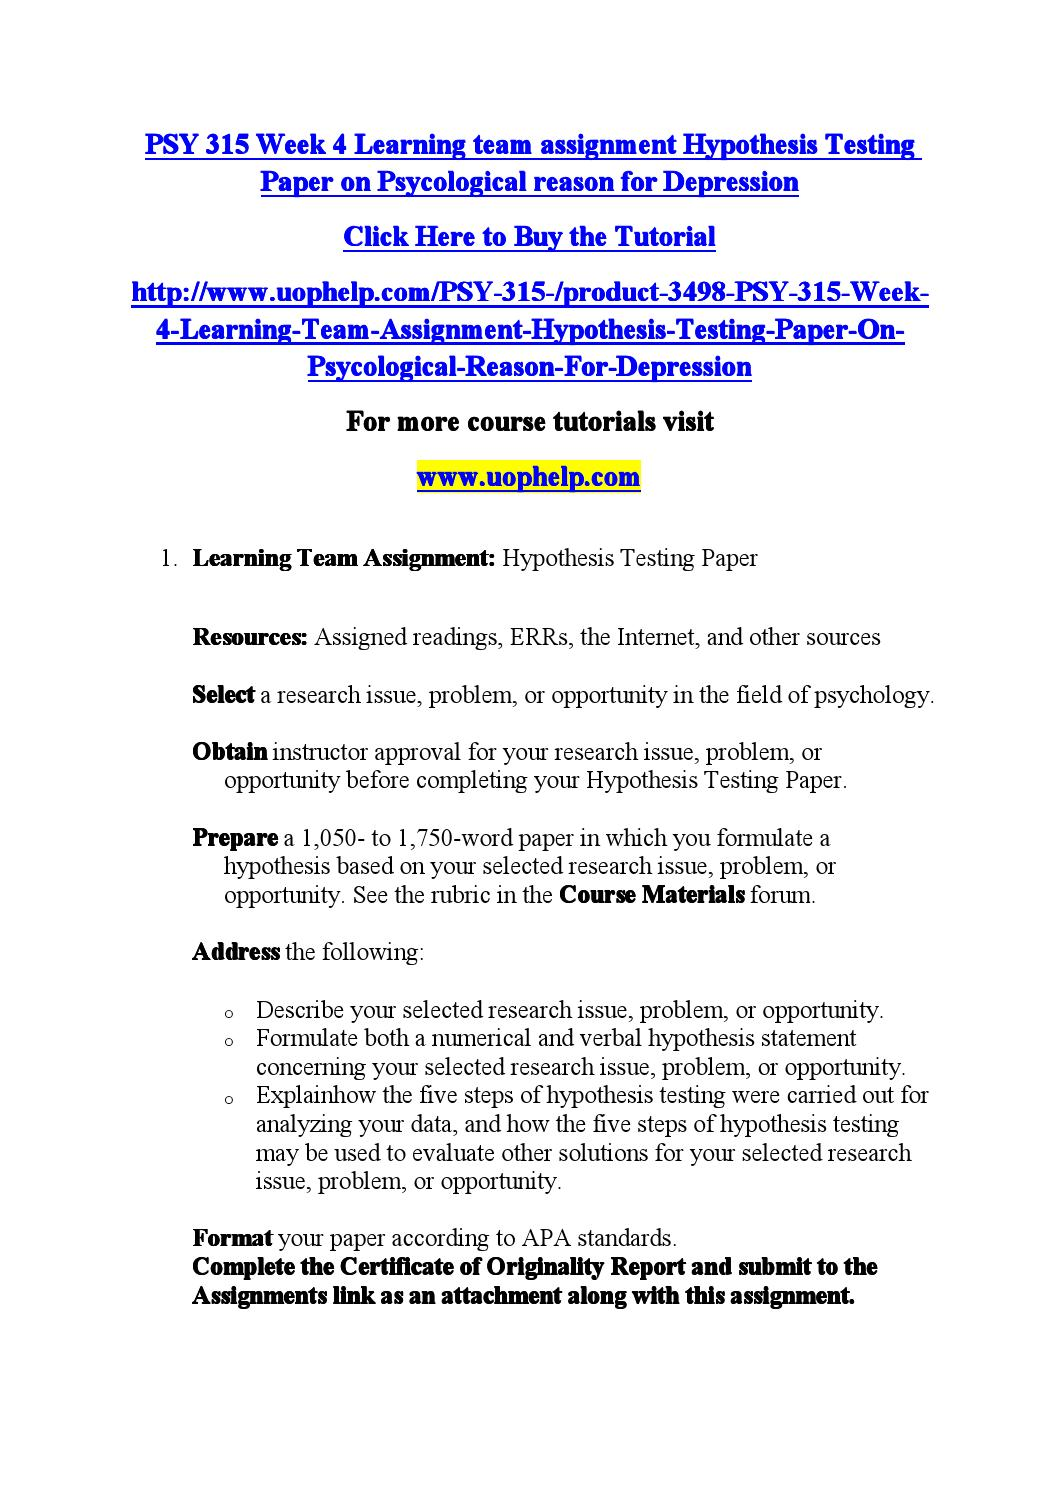 008 Page 1 Research Paper Hypothesis Testing Awesome In Pdf Full